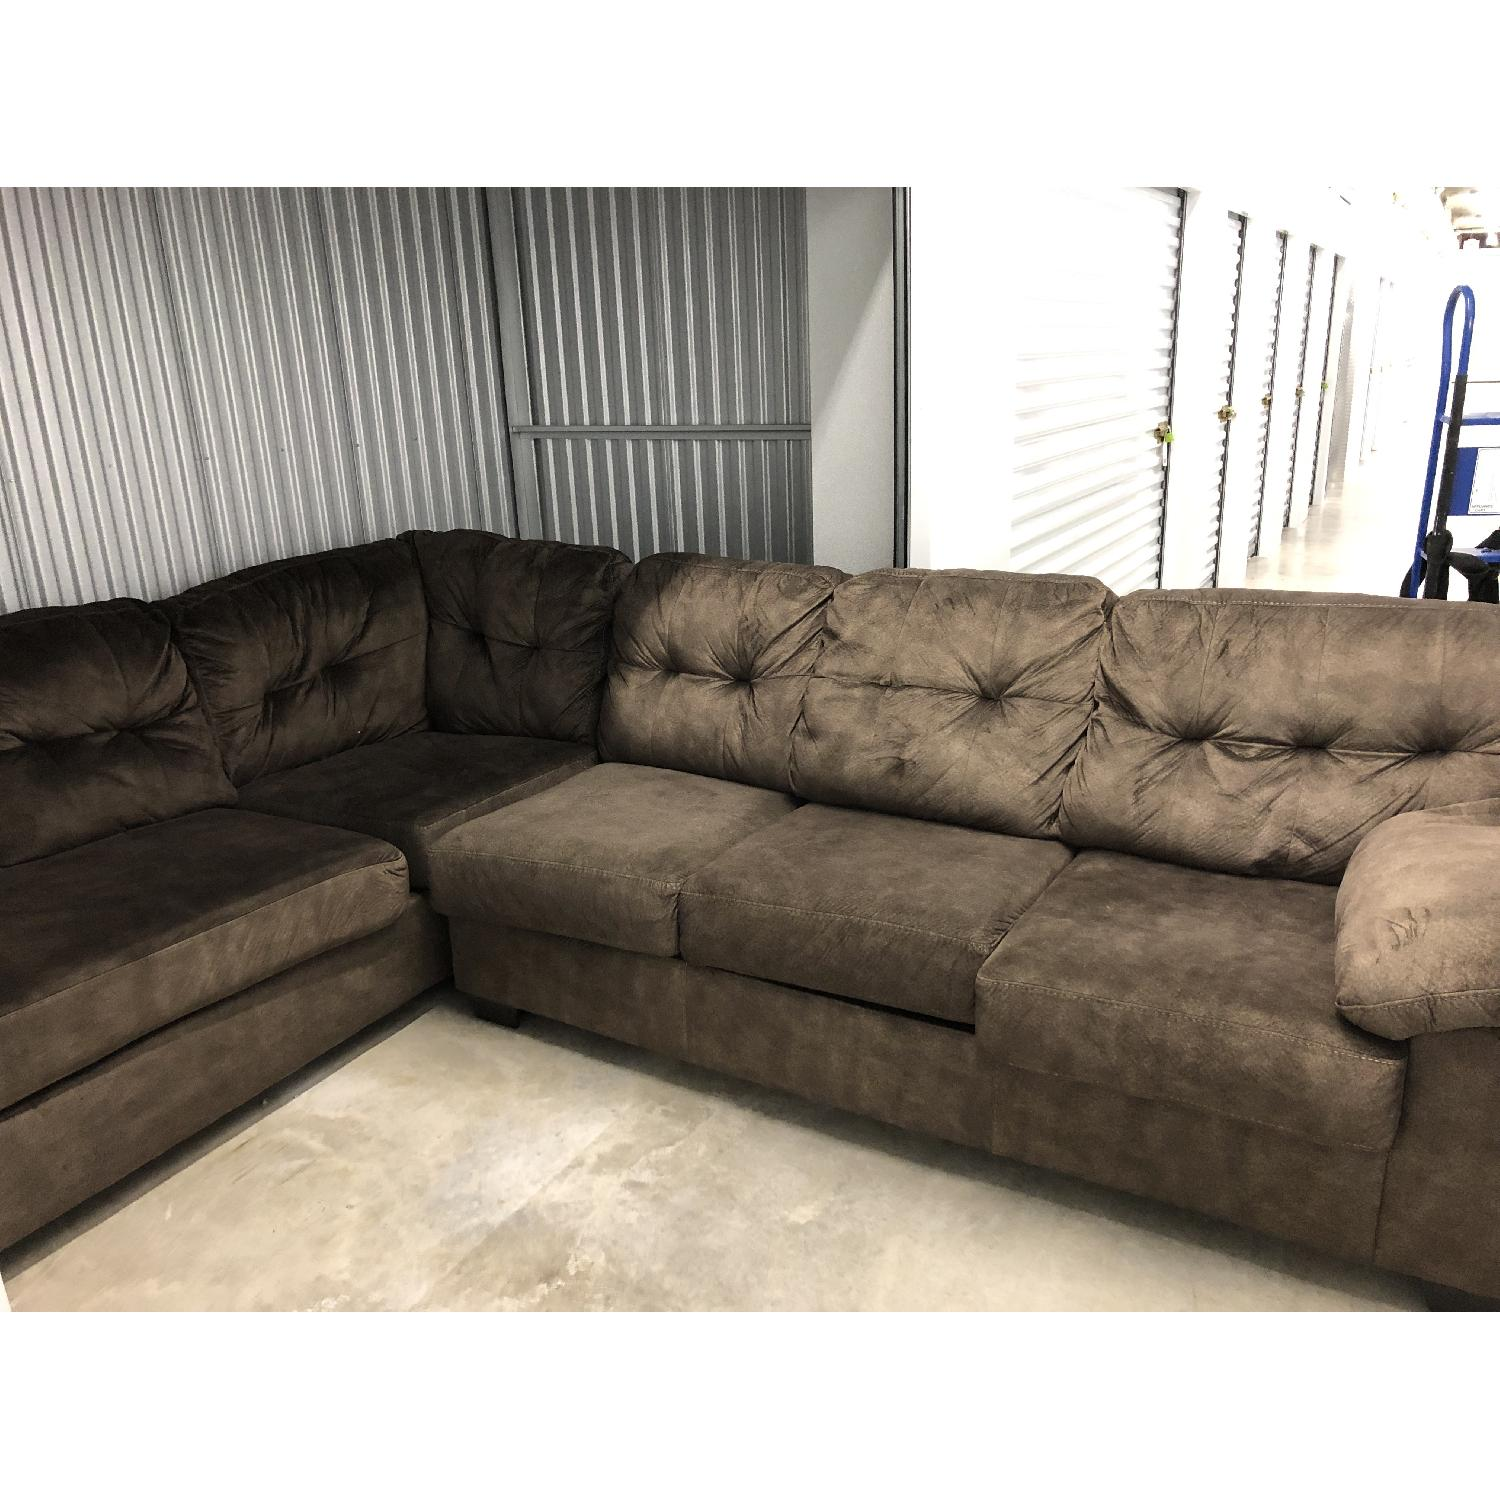 Fabulous Ashley 2 Piece Sectional Sofa Aptdeco Spiritservingveterans Wood Chair Design Ideas Spiritservingveteransorg